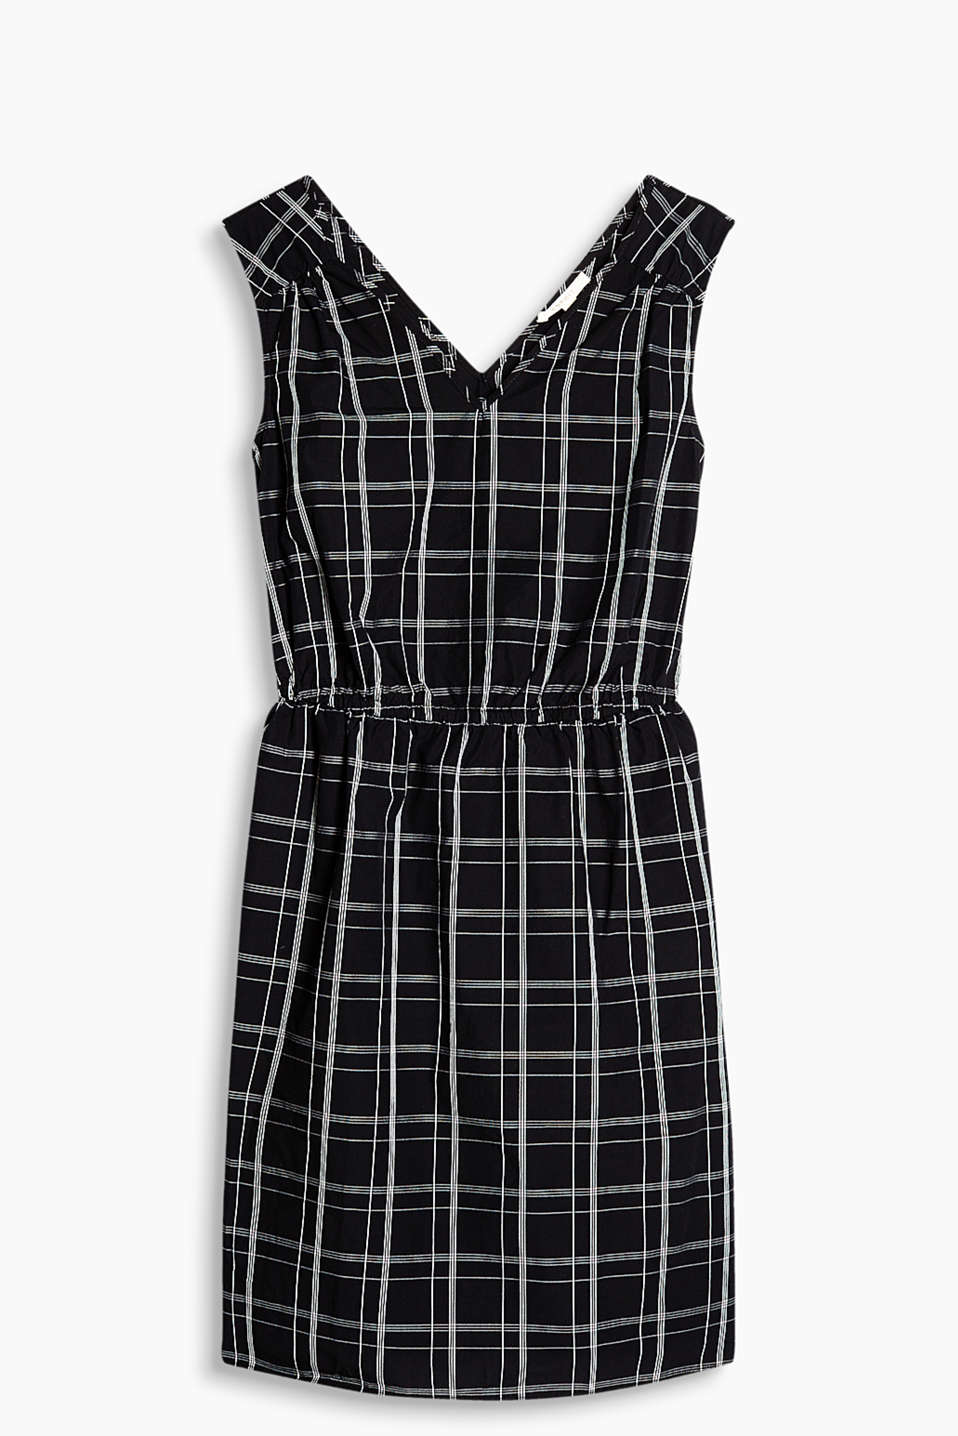 Fitted dress made of firm poplin fabric with large, interwoven checks and slit pockets